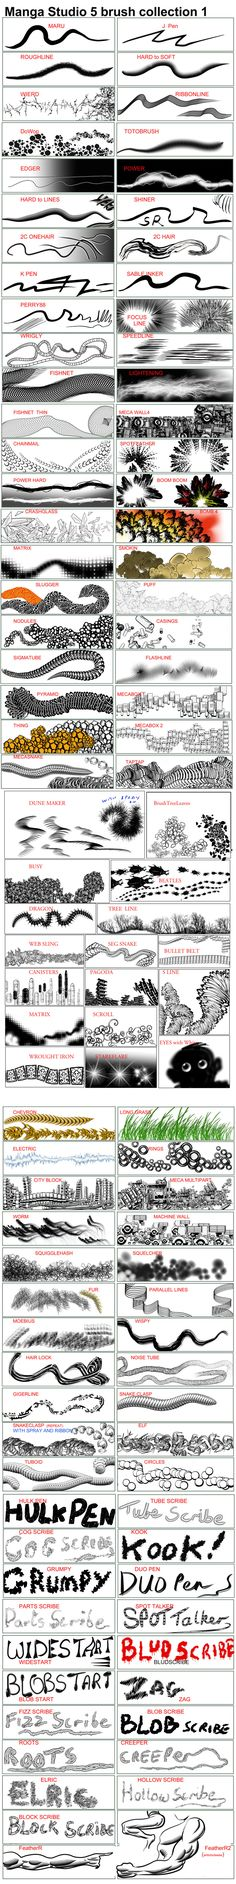 Manga Studio v5 Brushes and Actions - collection 1 by 888toto.deviantart.com on @deviantART